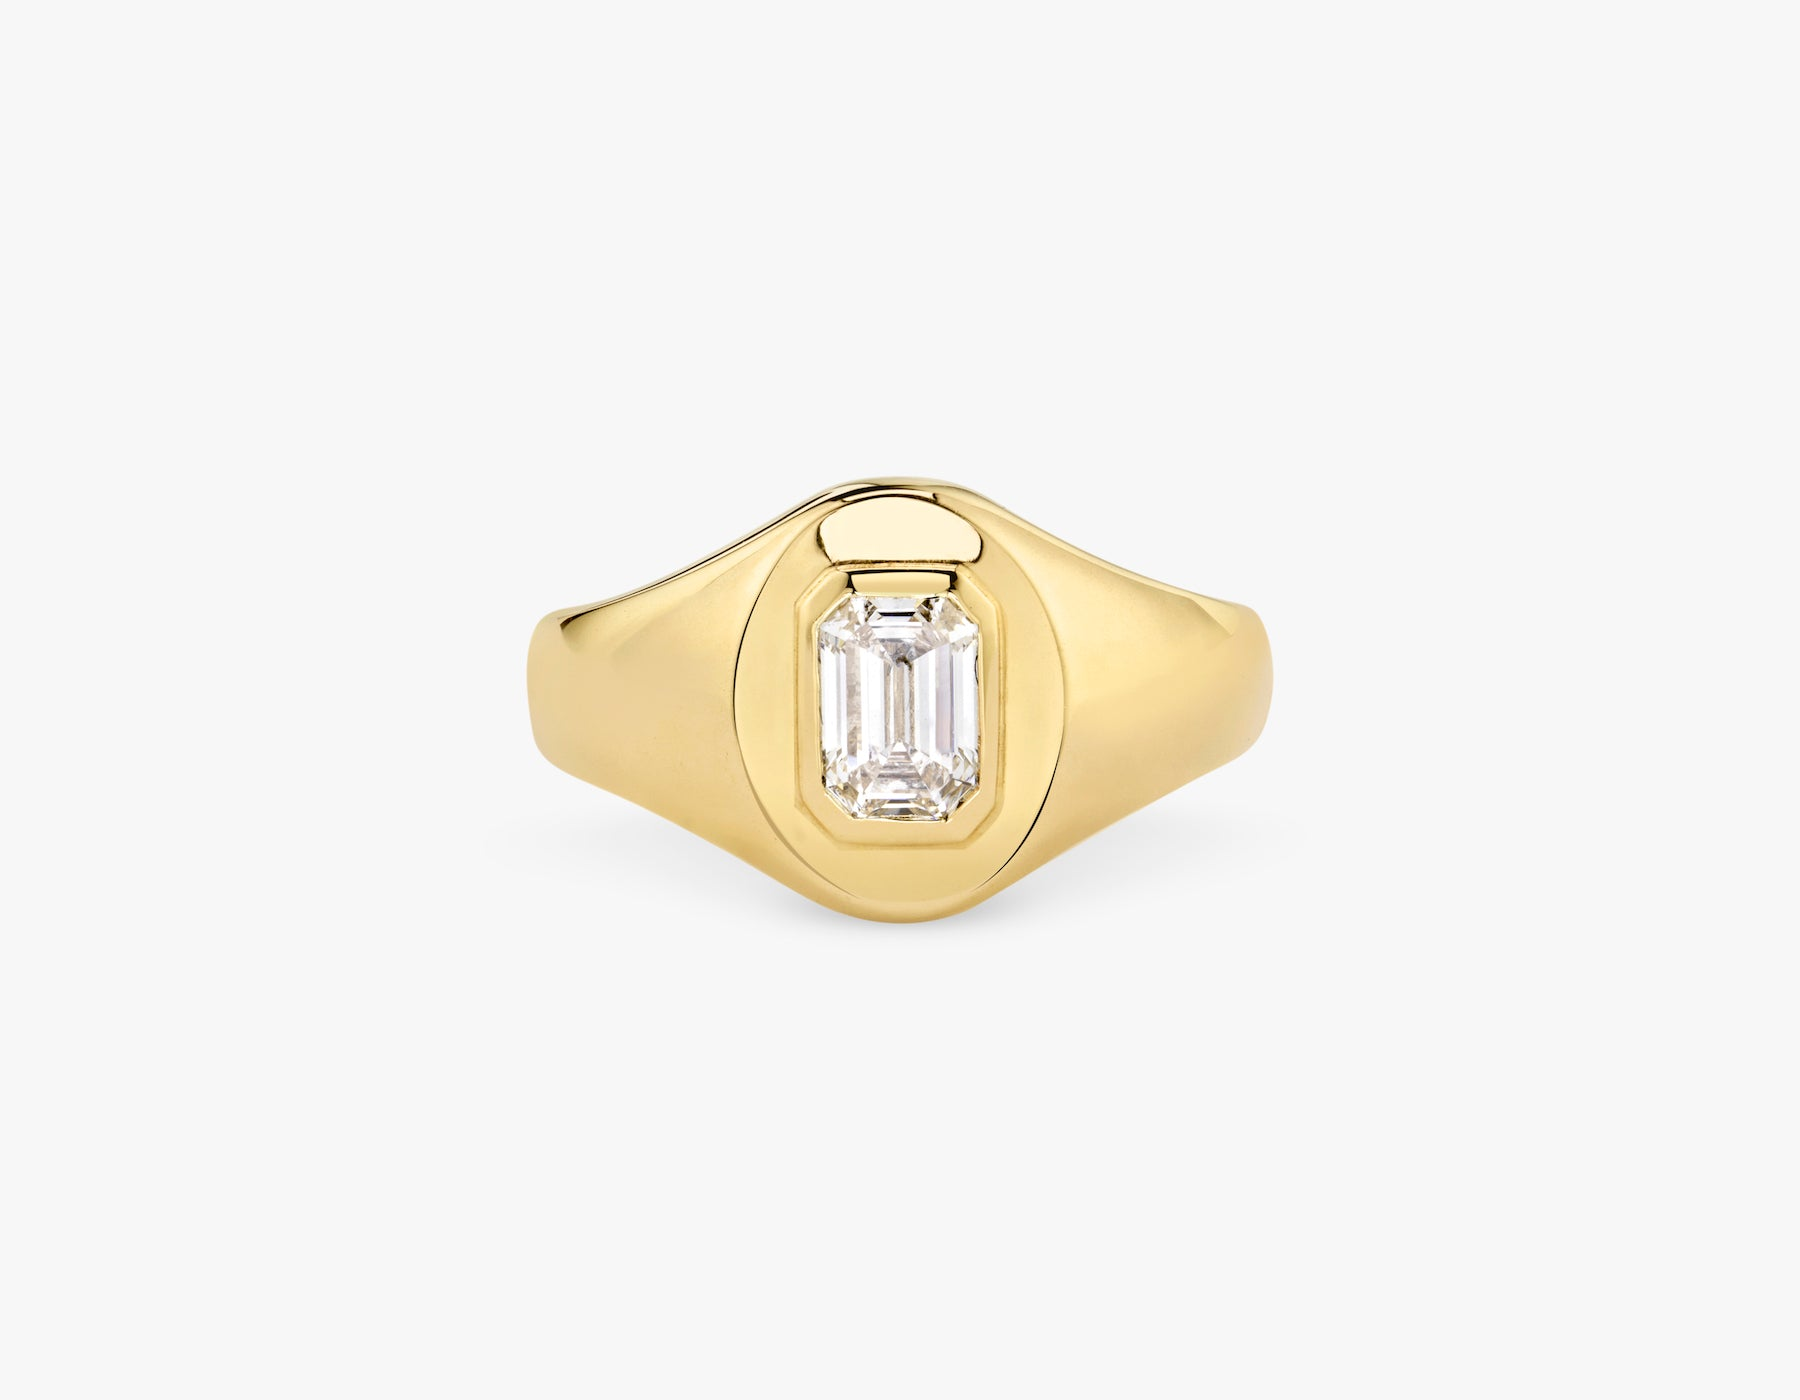 Vrai 14k solid gold classic simple Emerald Diamond Signet Ring, 14K Yellow Gold